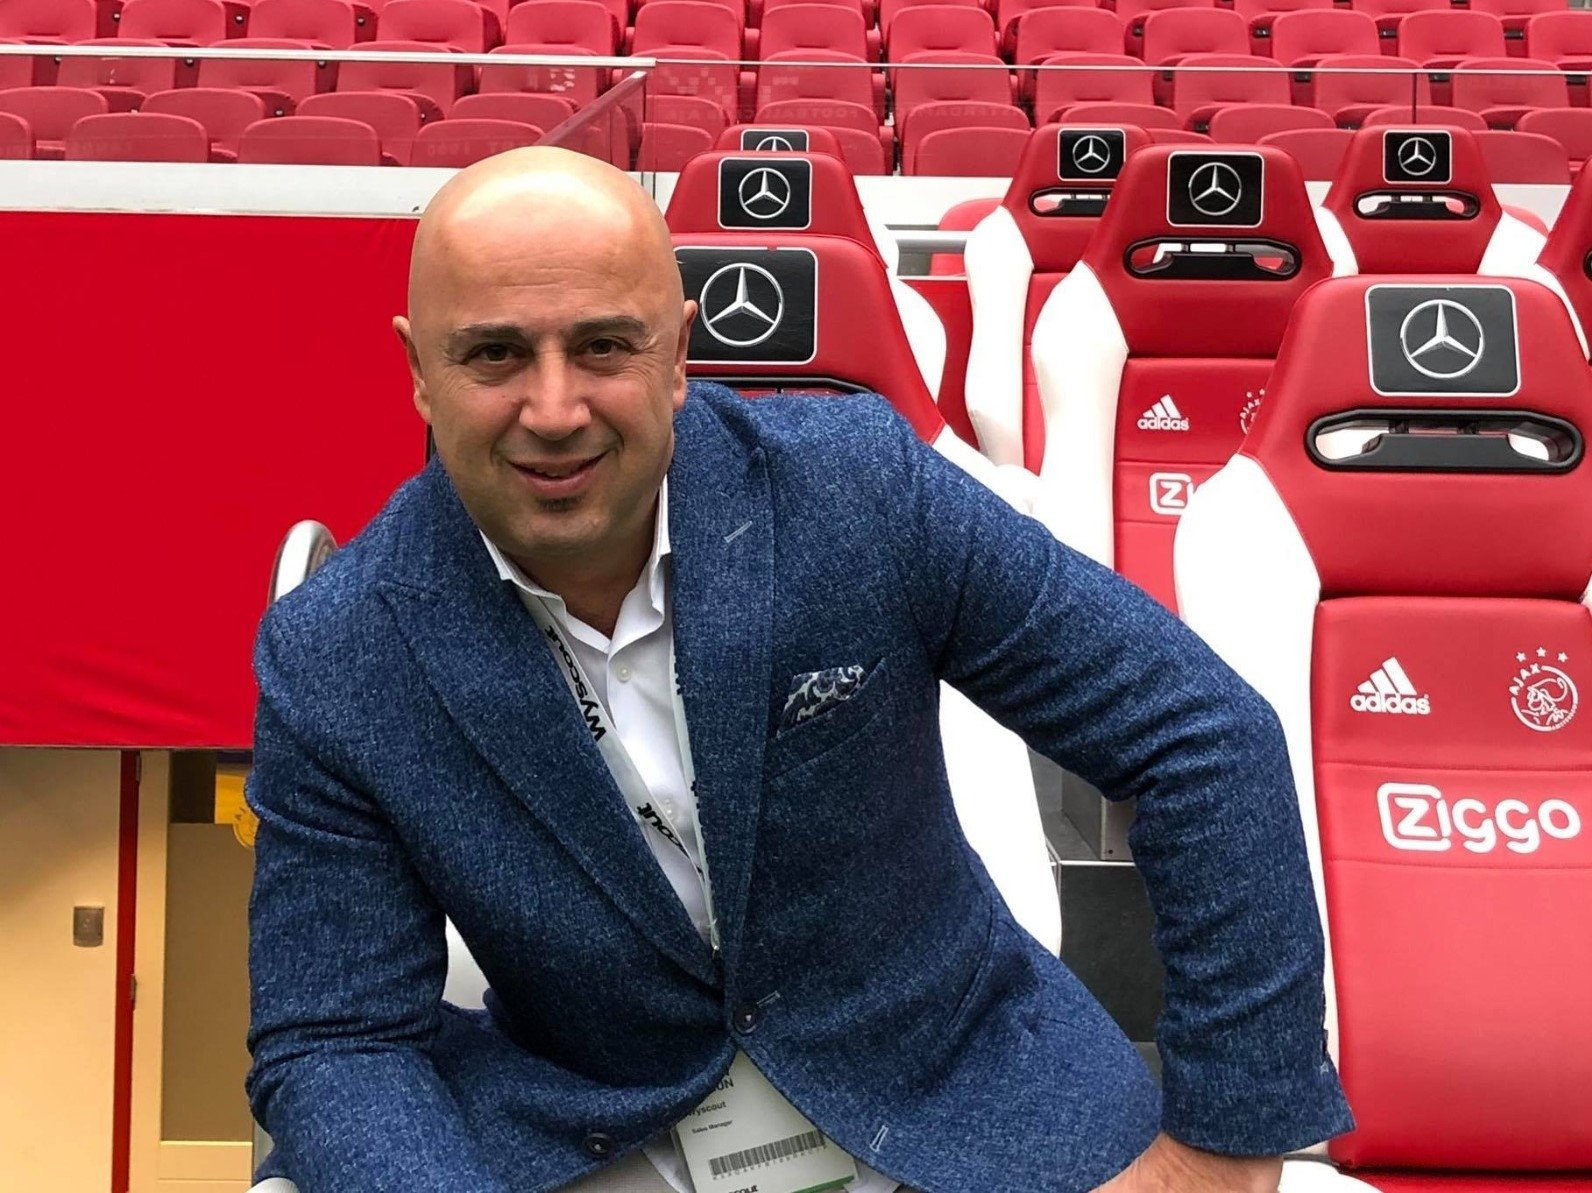 Tarkan Batgün, one of the founders of the Turkish startup Comparisonator that develops data-driven football scouting solutions.